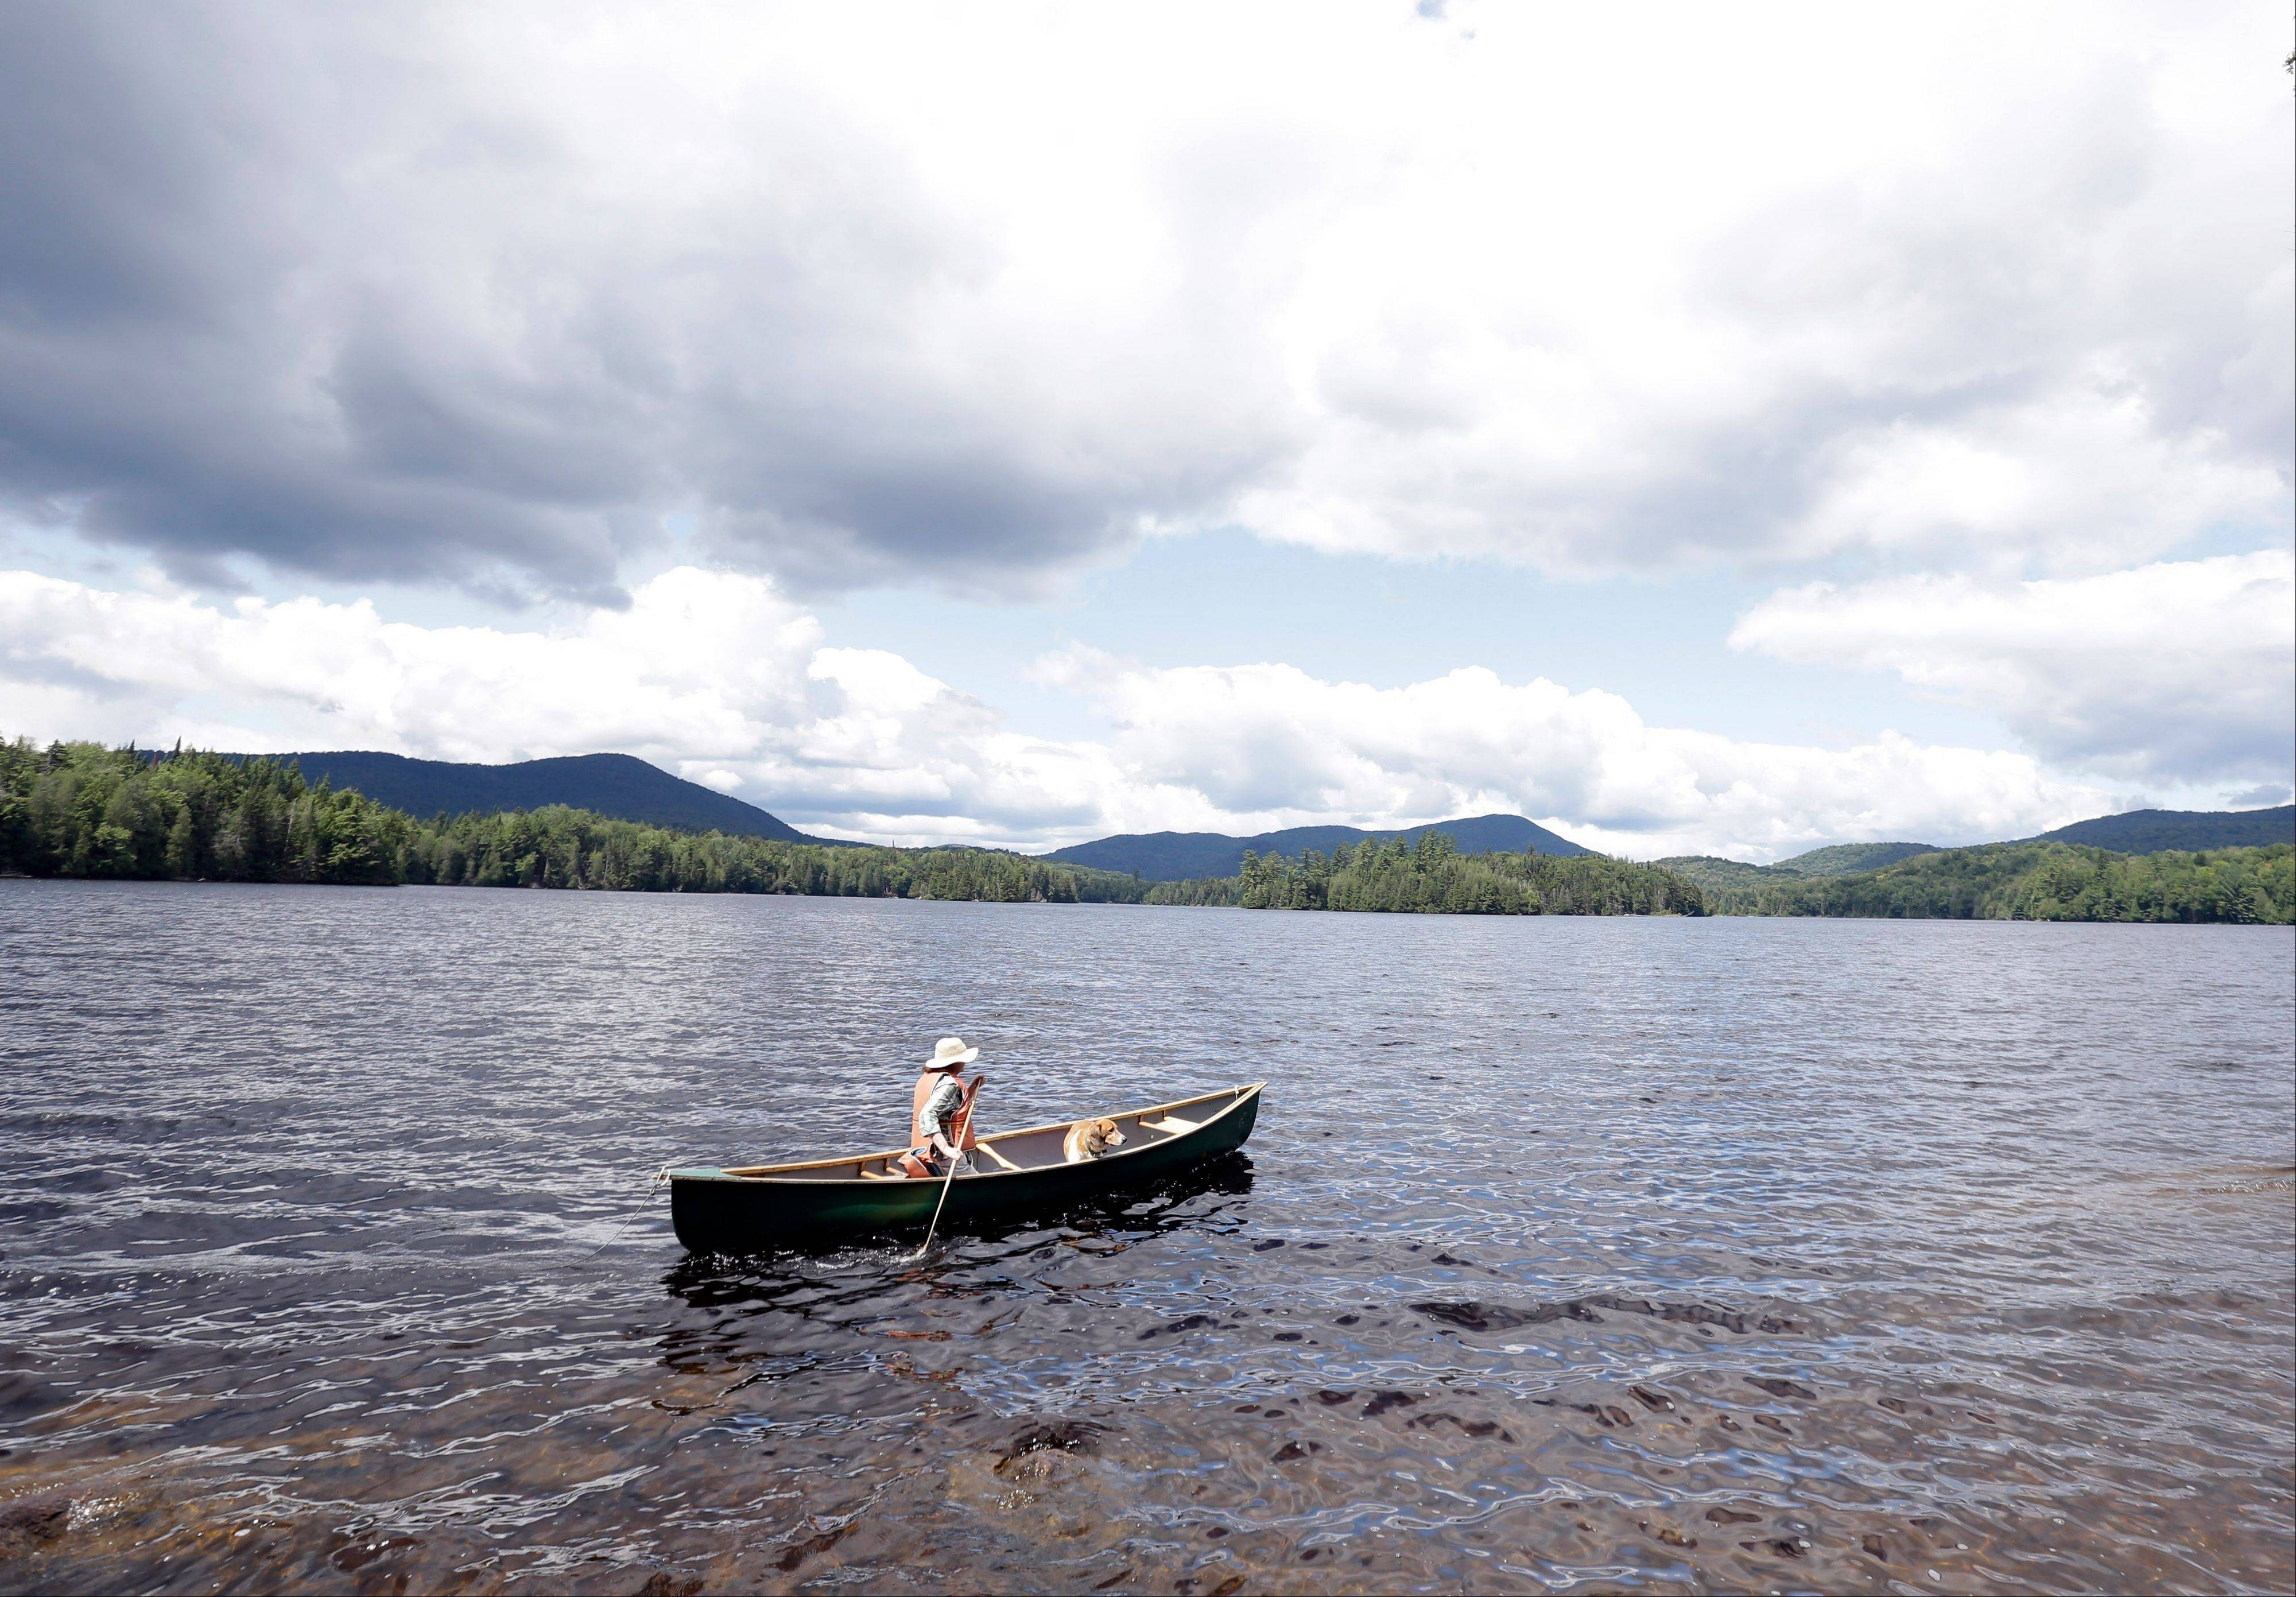 Cynthia Taylor, of Watertown, Mass., canoes along the shoreline of Camp Santanoni on Newcomb Lake with her dog Arlo, in Newcomb, N.Y. Camp Santanoni is an Adirondack Mountain great camp that is being restored.